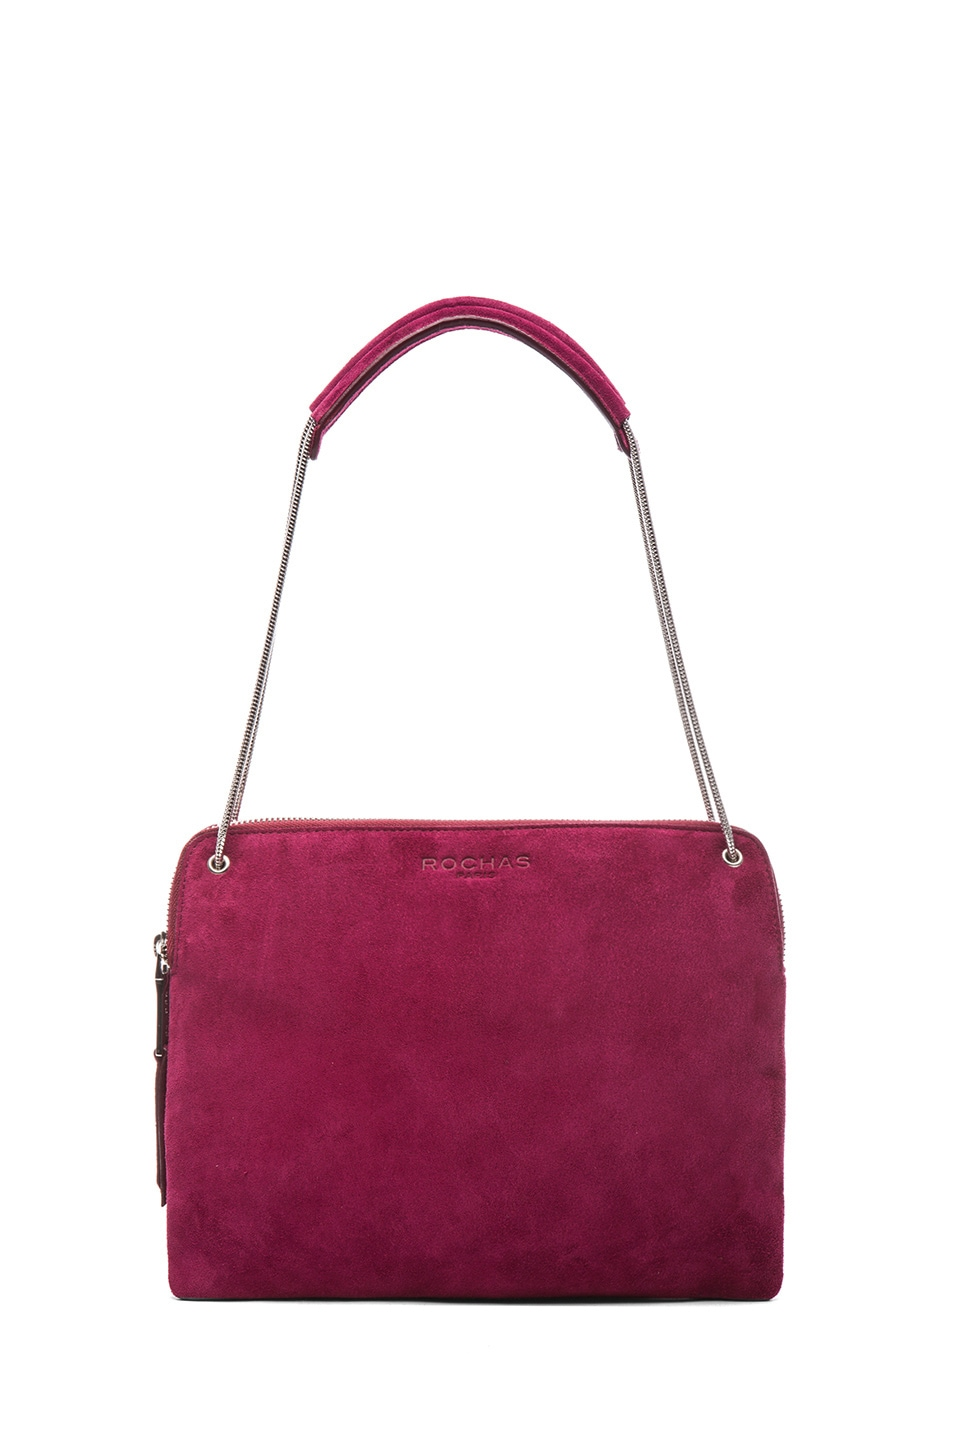 Image 5 of ROCHAS Small Borsa Suede Clutch in Claret